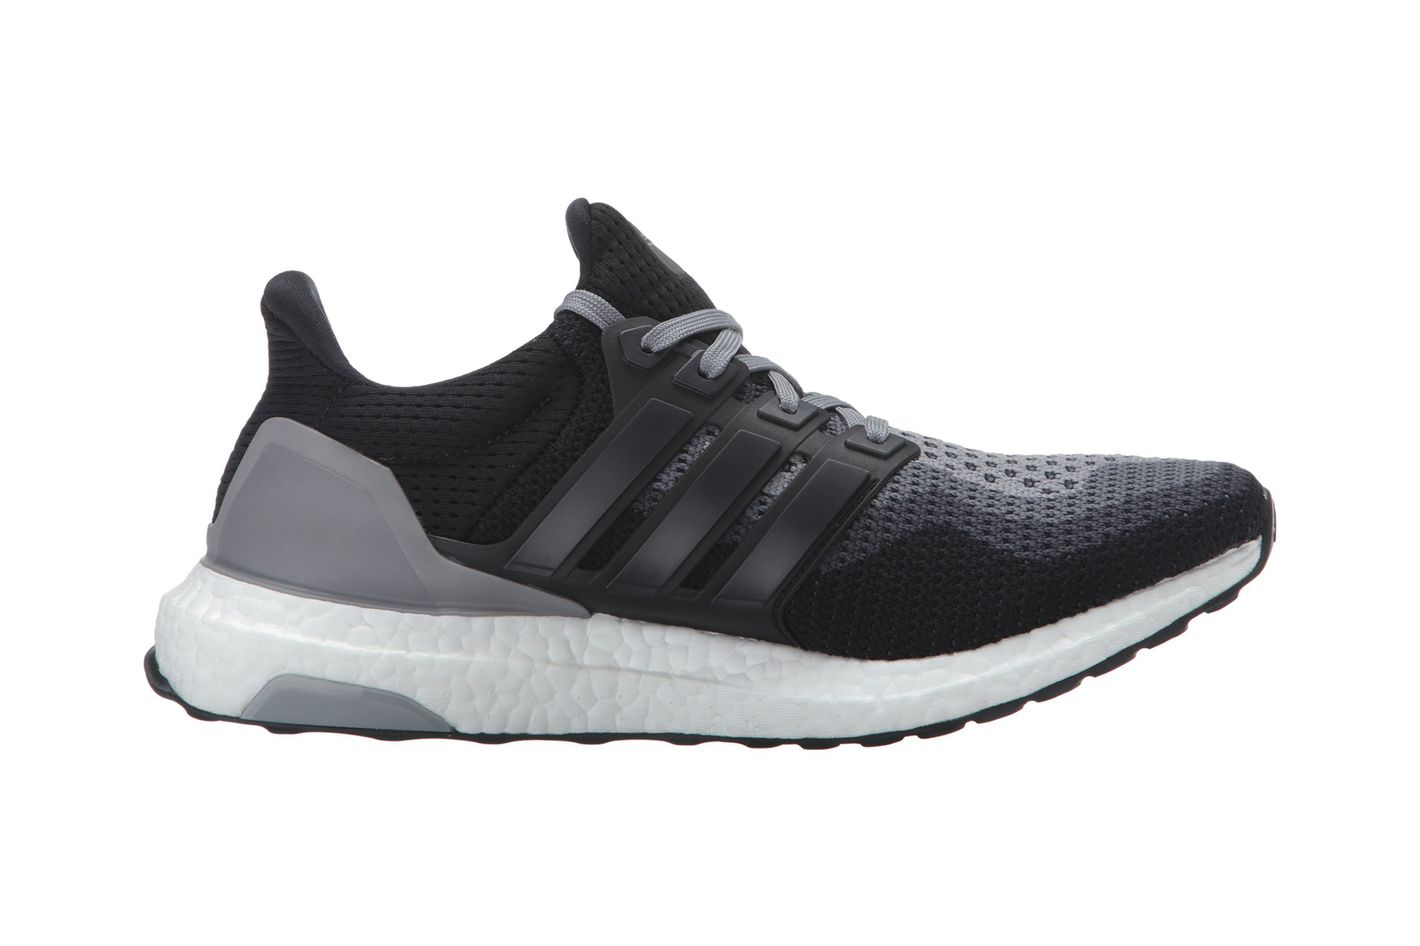 Adidas UltraBoost at Amazon. Buy. Brooks Men's Addiction Walking Shoes ...